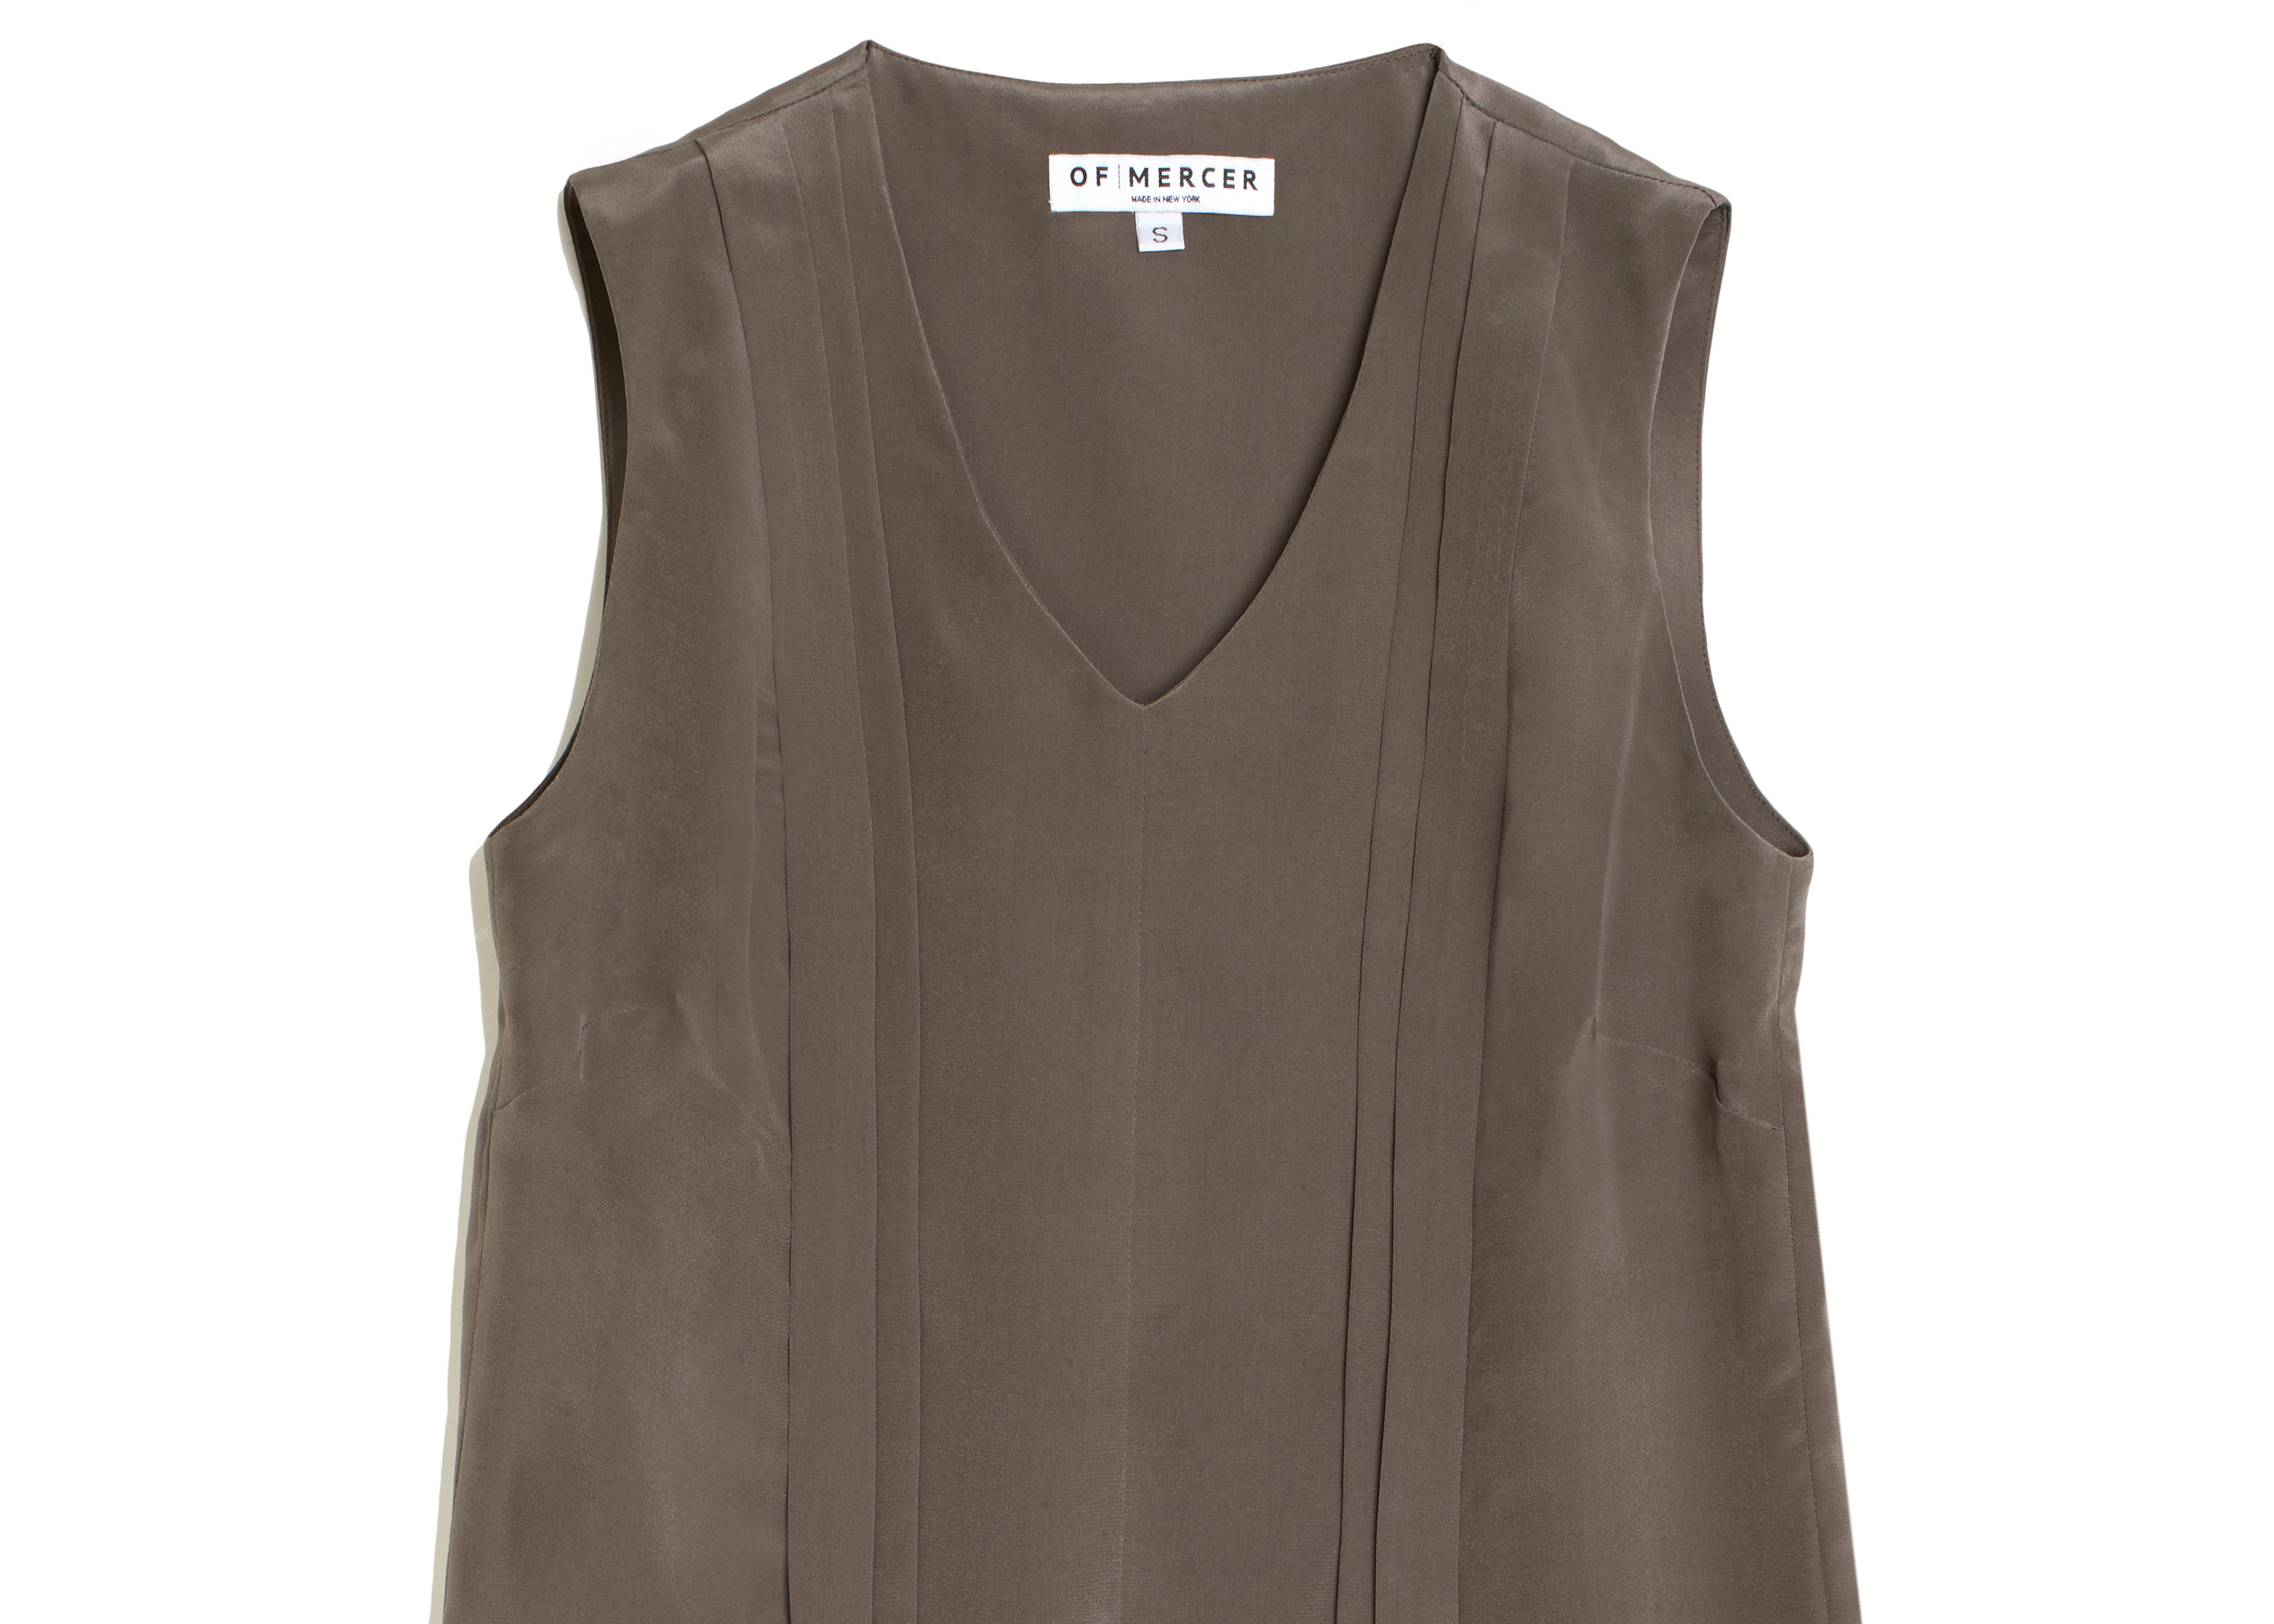 Of Mercer | Taupe Warren Top | Detail Shot